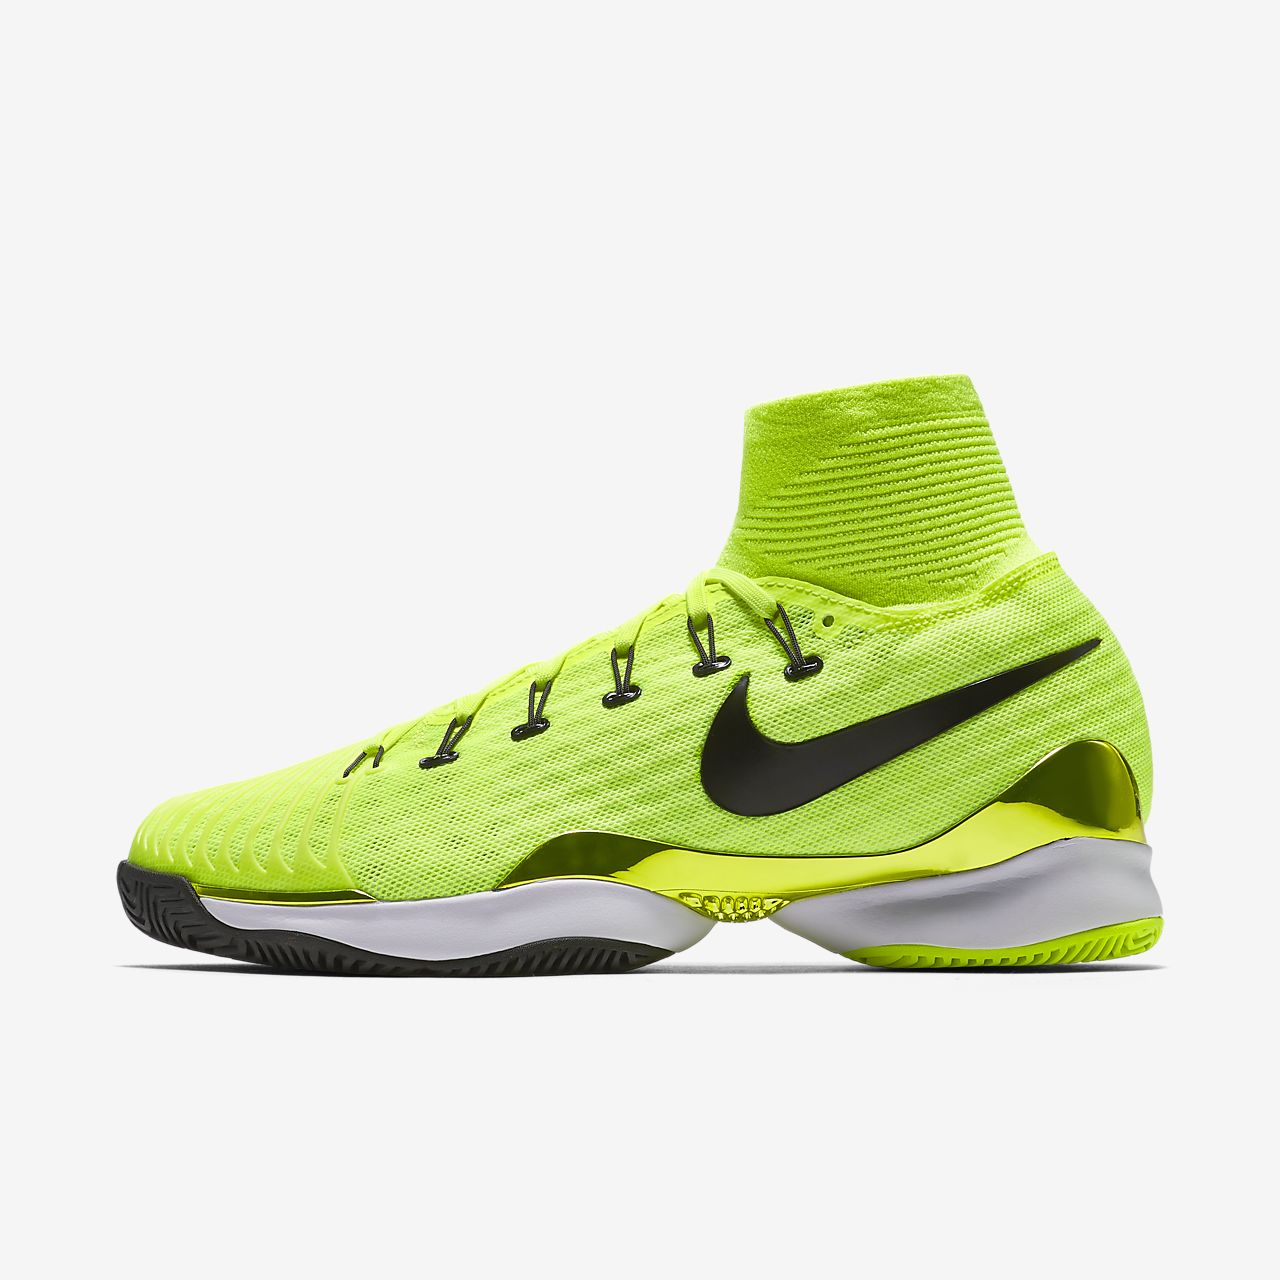 air zoom ultrafly tennis